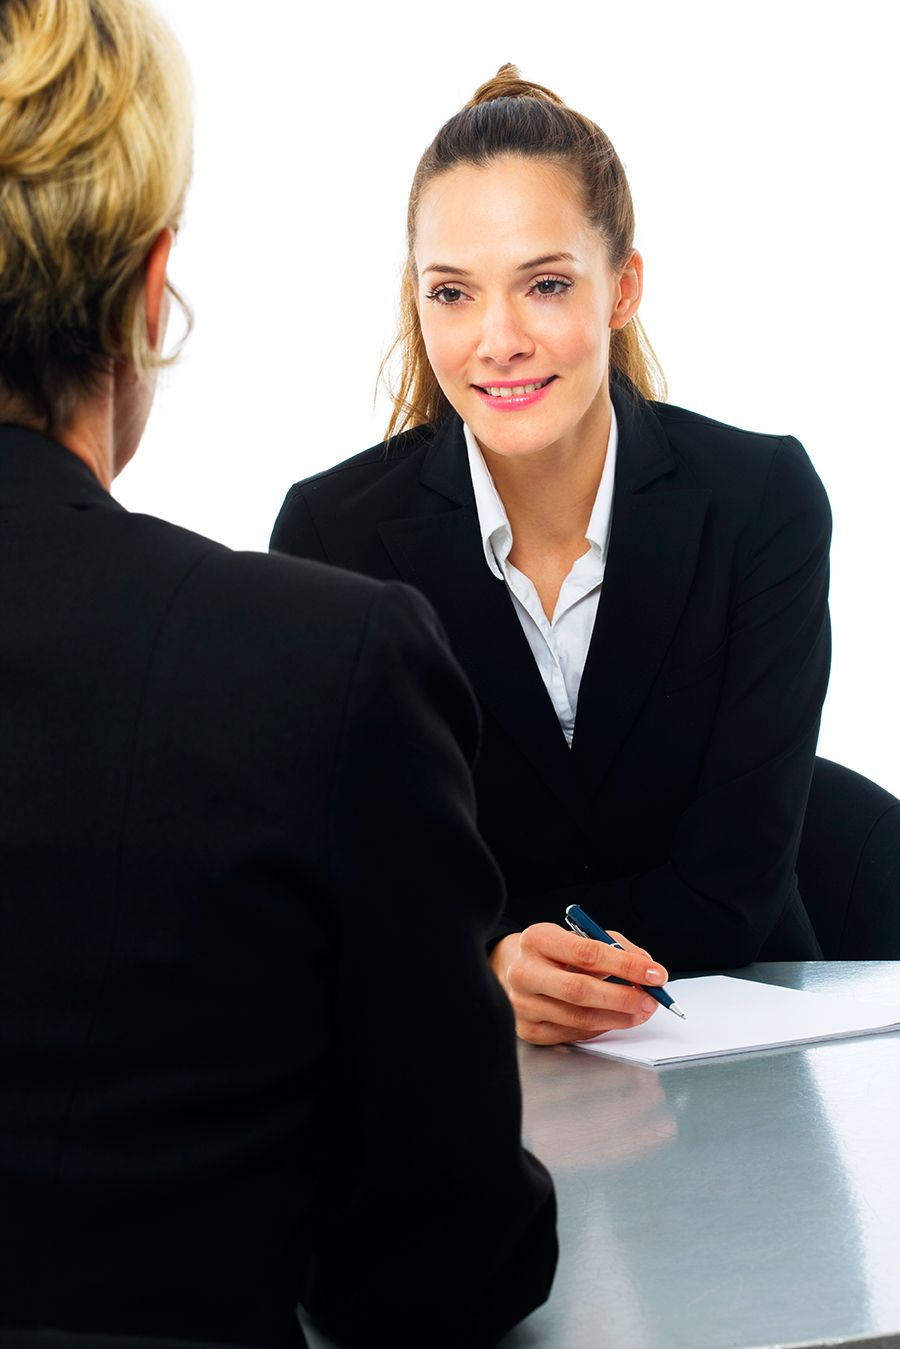 Rise Above the Crowd in Your Public Accounting Interviews